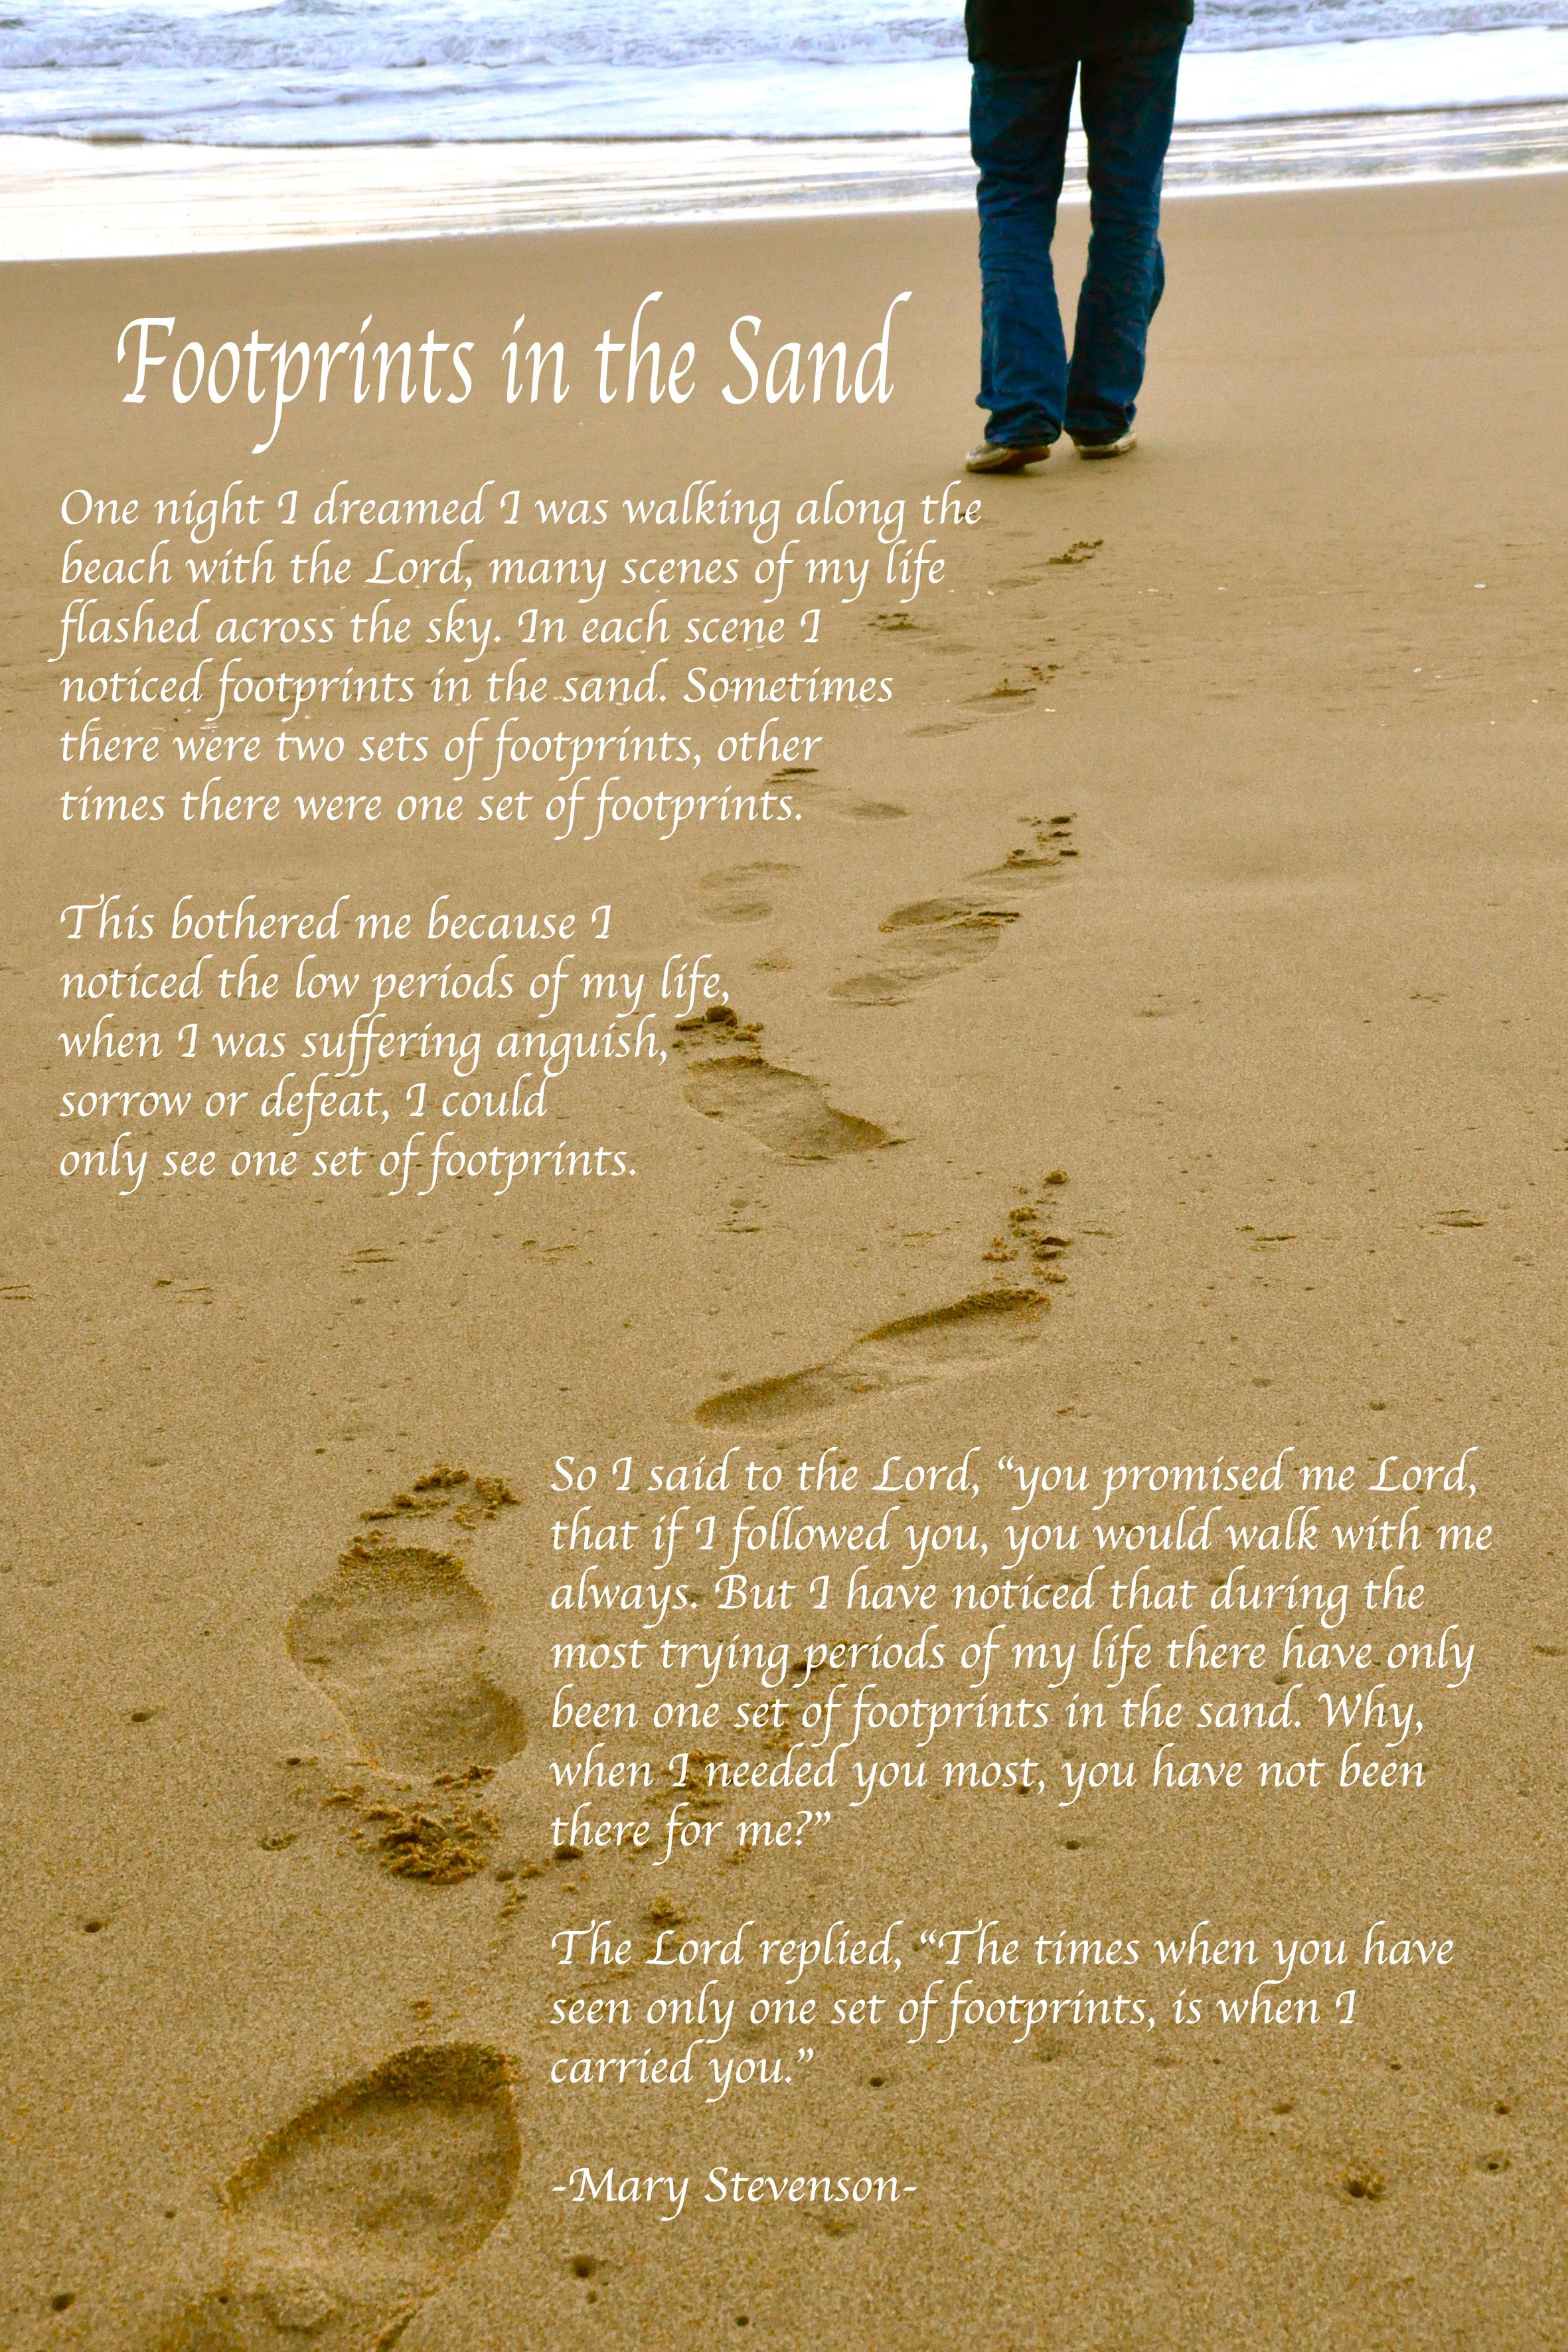 Footprints in the sand of Melbourne | Pinterest | Footprints, Poem ...